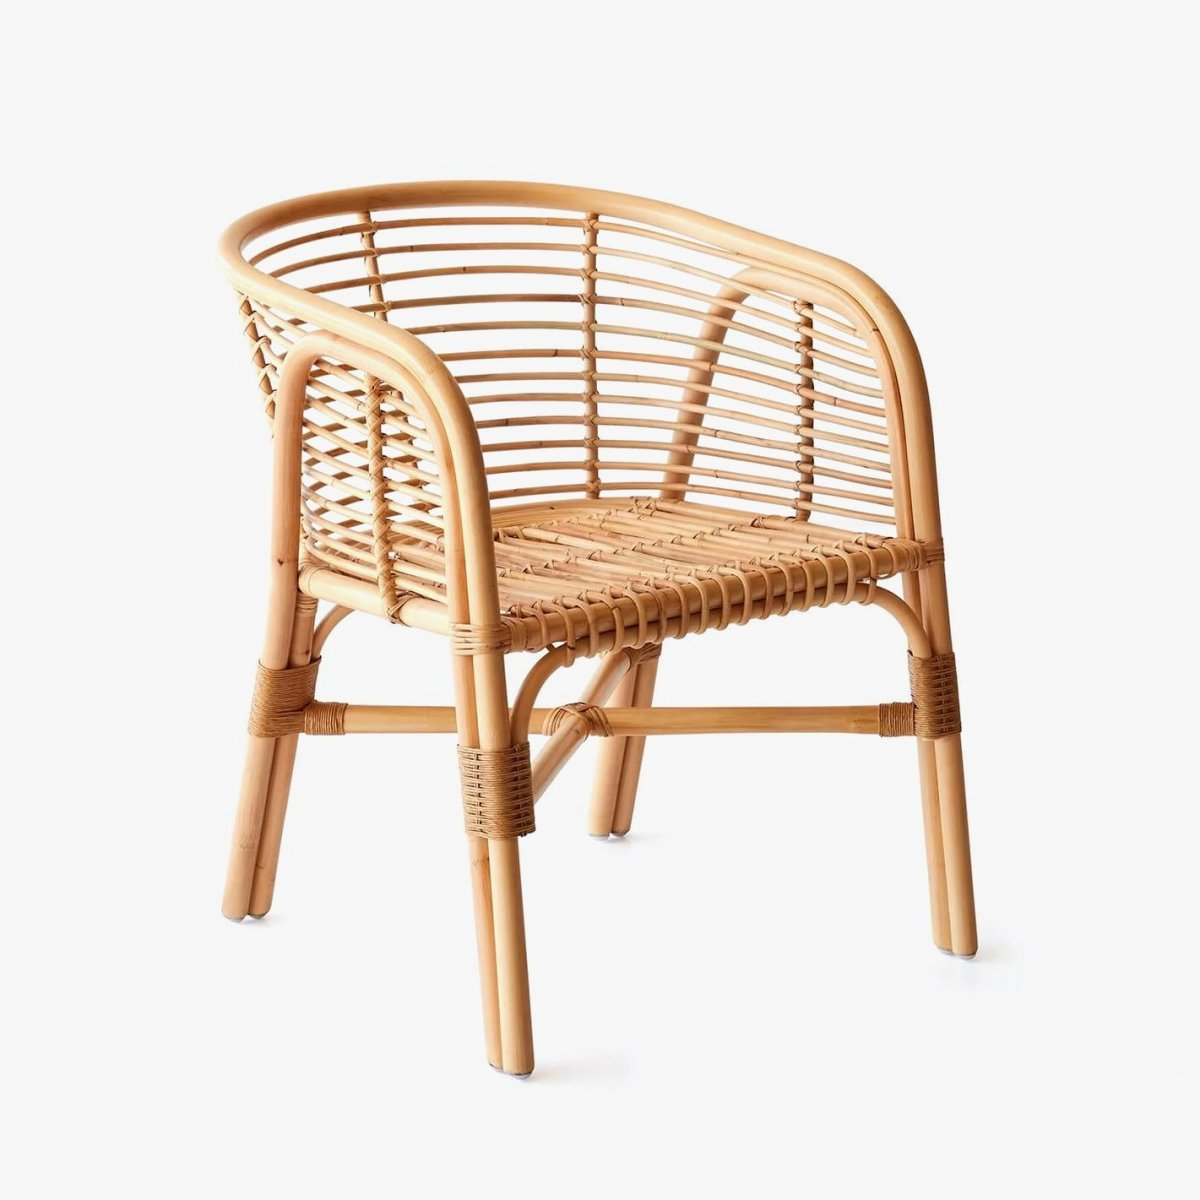 Lombok Rattan Lounge Chair.